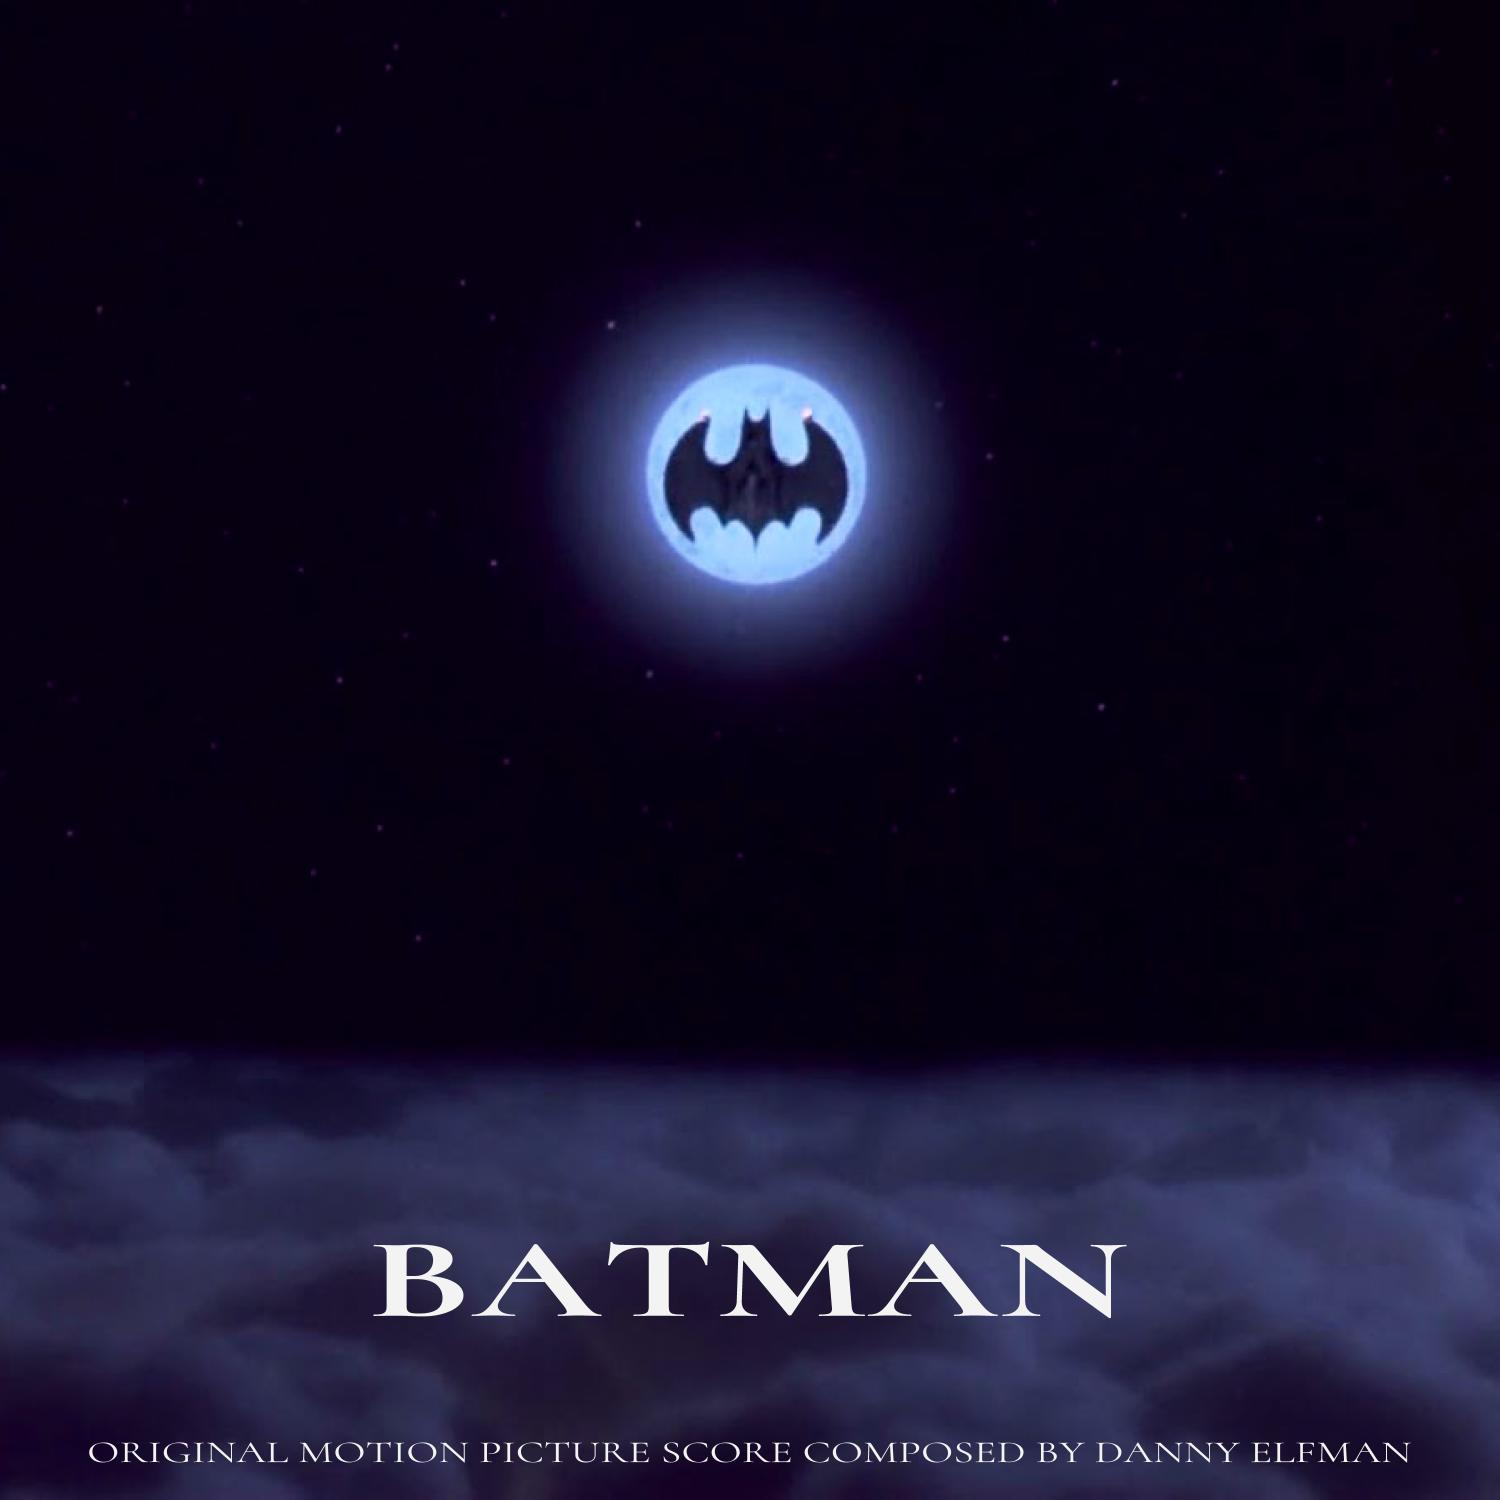 File:Batman score.jpg